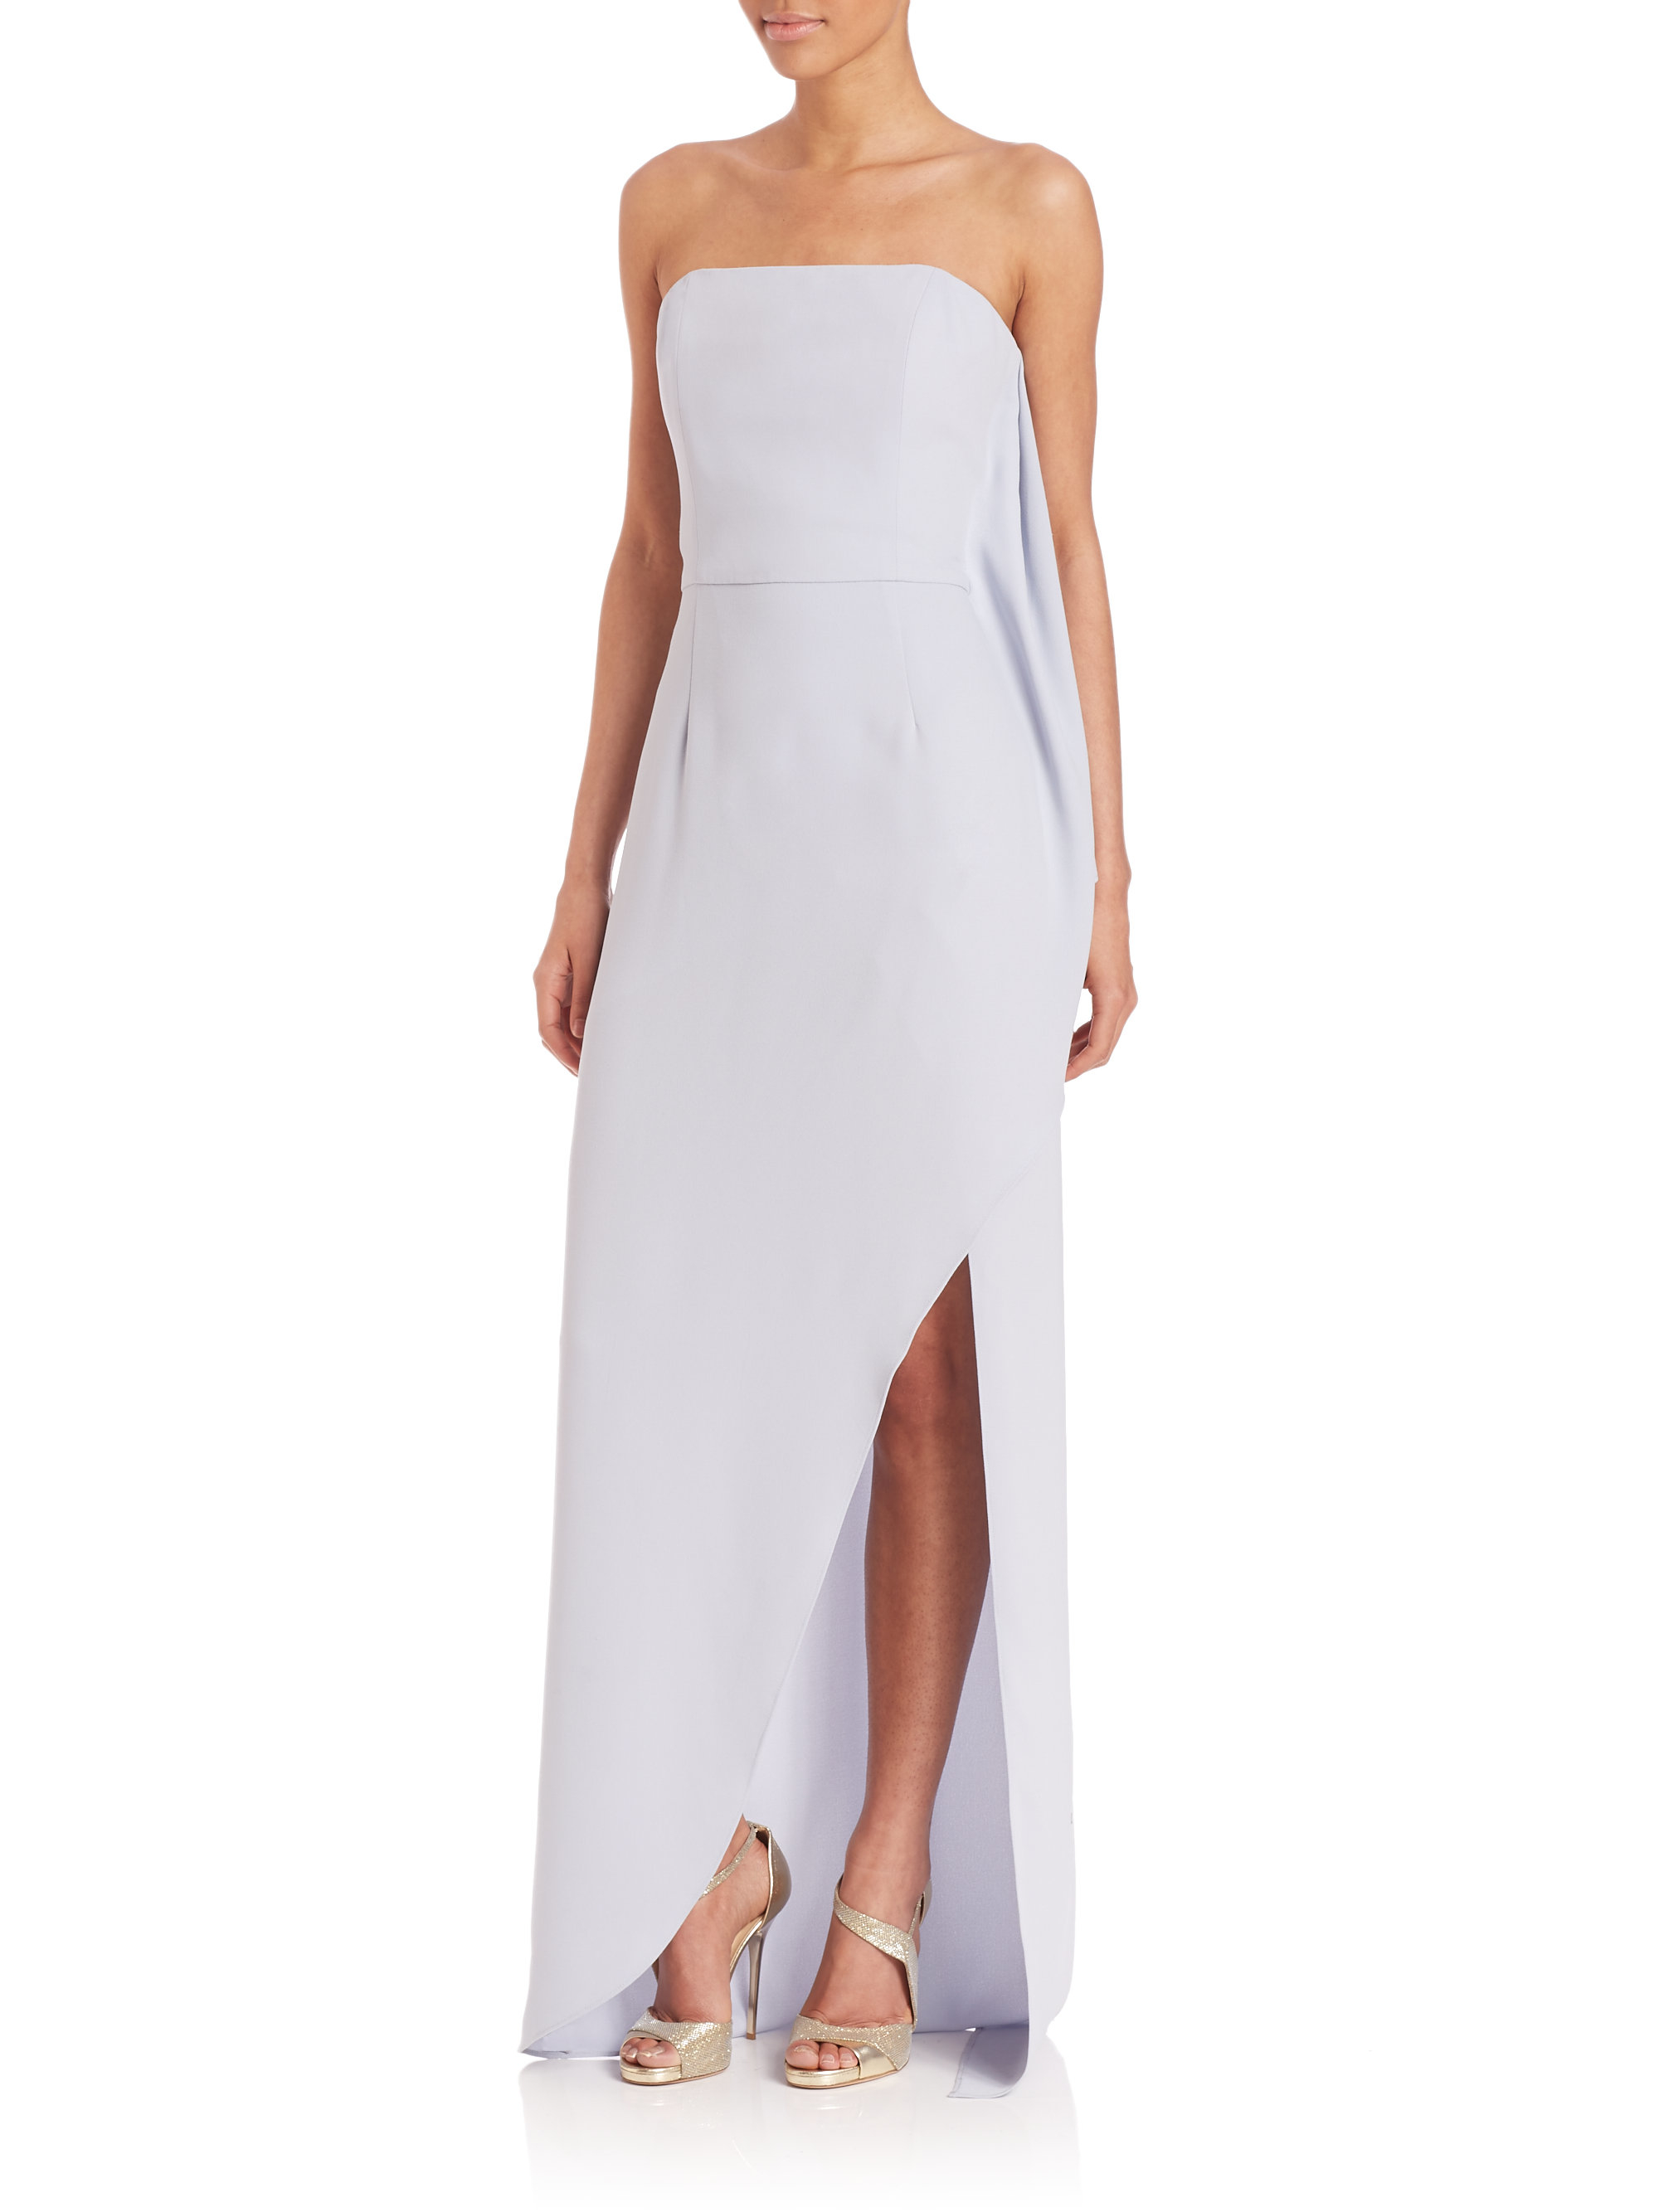 Lyst - Halston Strapless Crepe Gown in Metallic